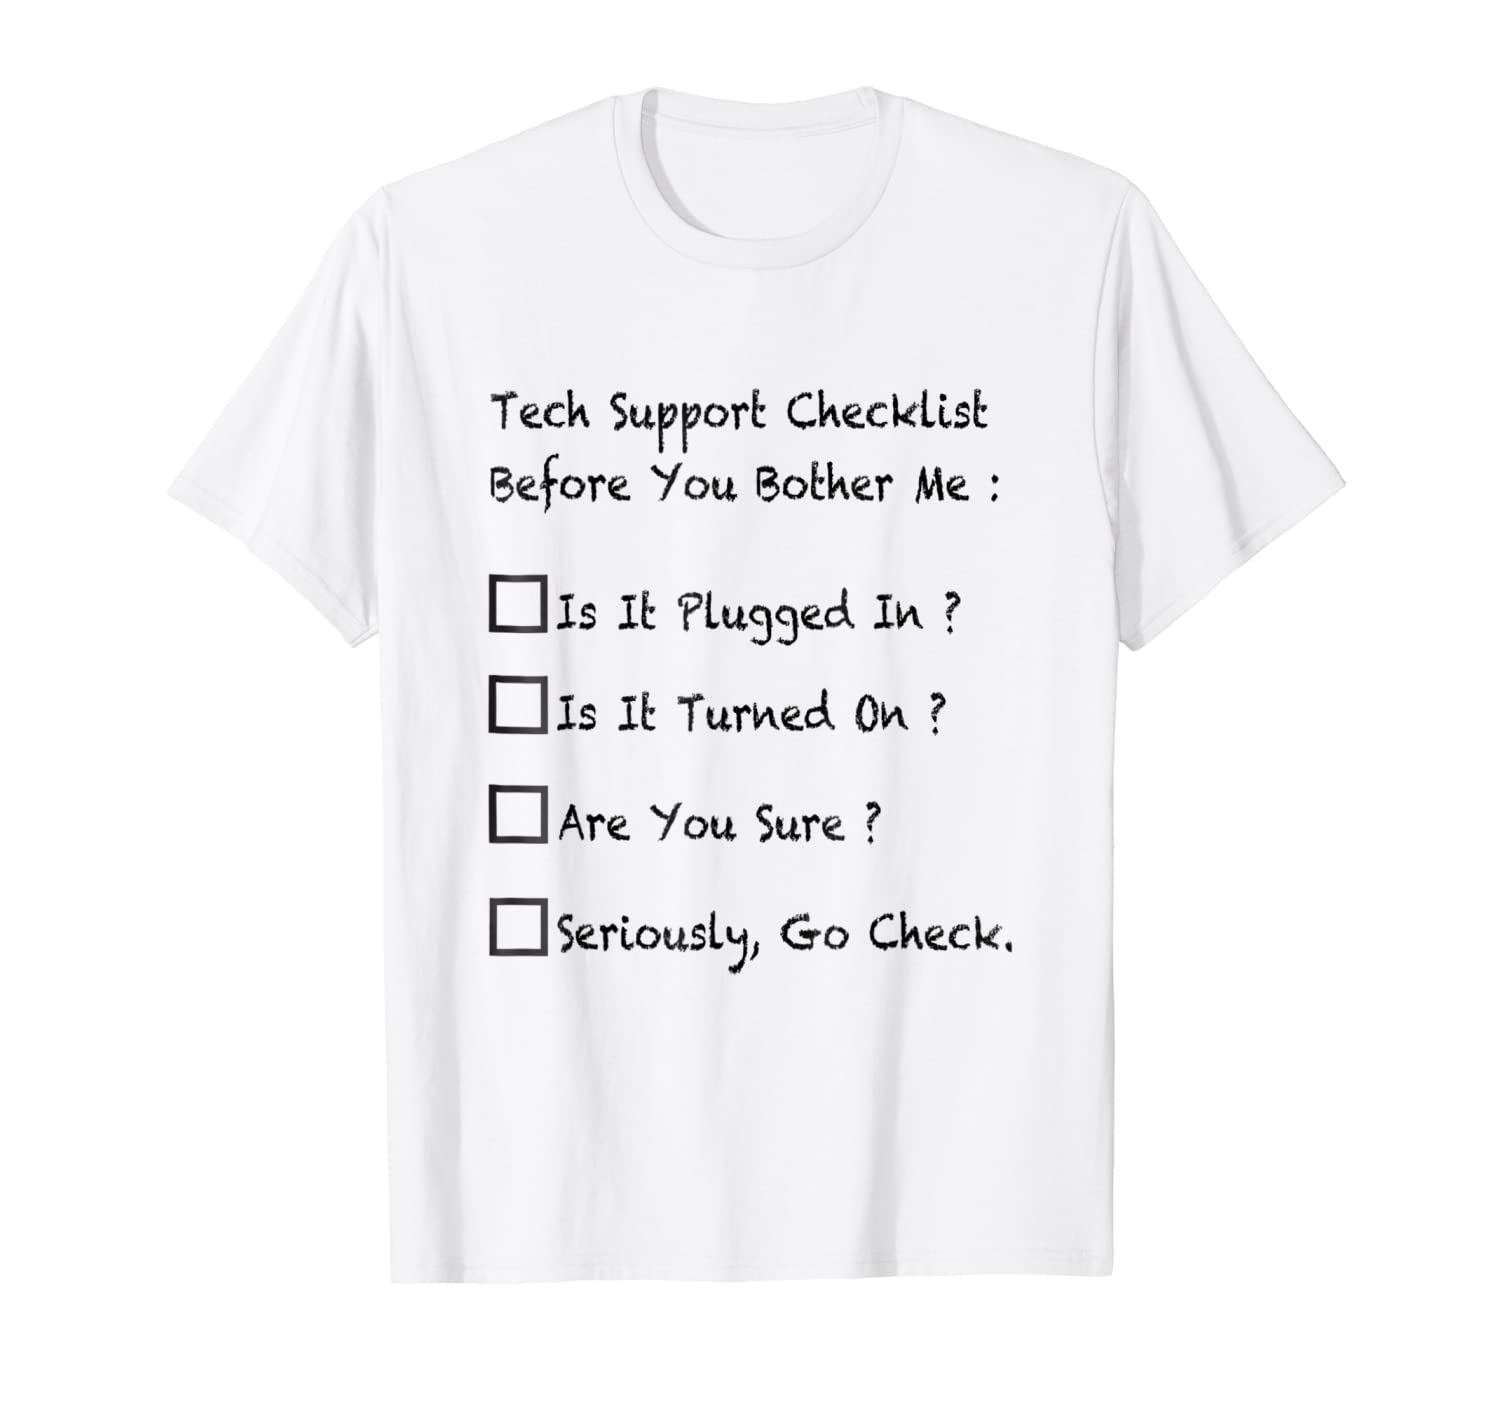 b13f3937 Amazon.com: Tech Support Shirt Gift, Funny Tech Support Helpdesk T-shirt:  Clothing